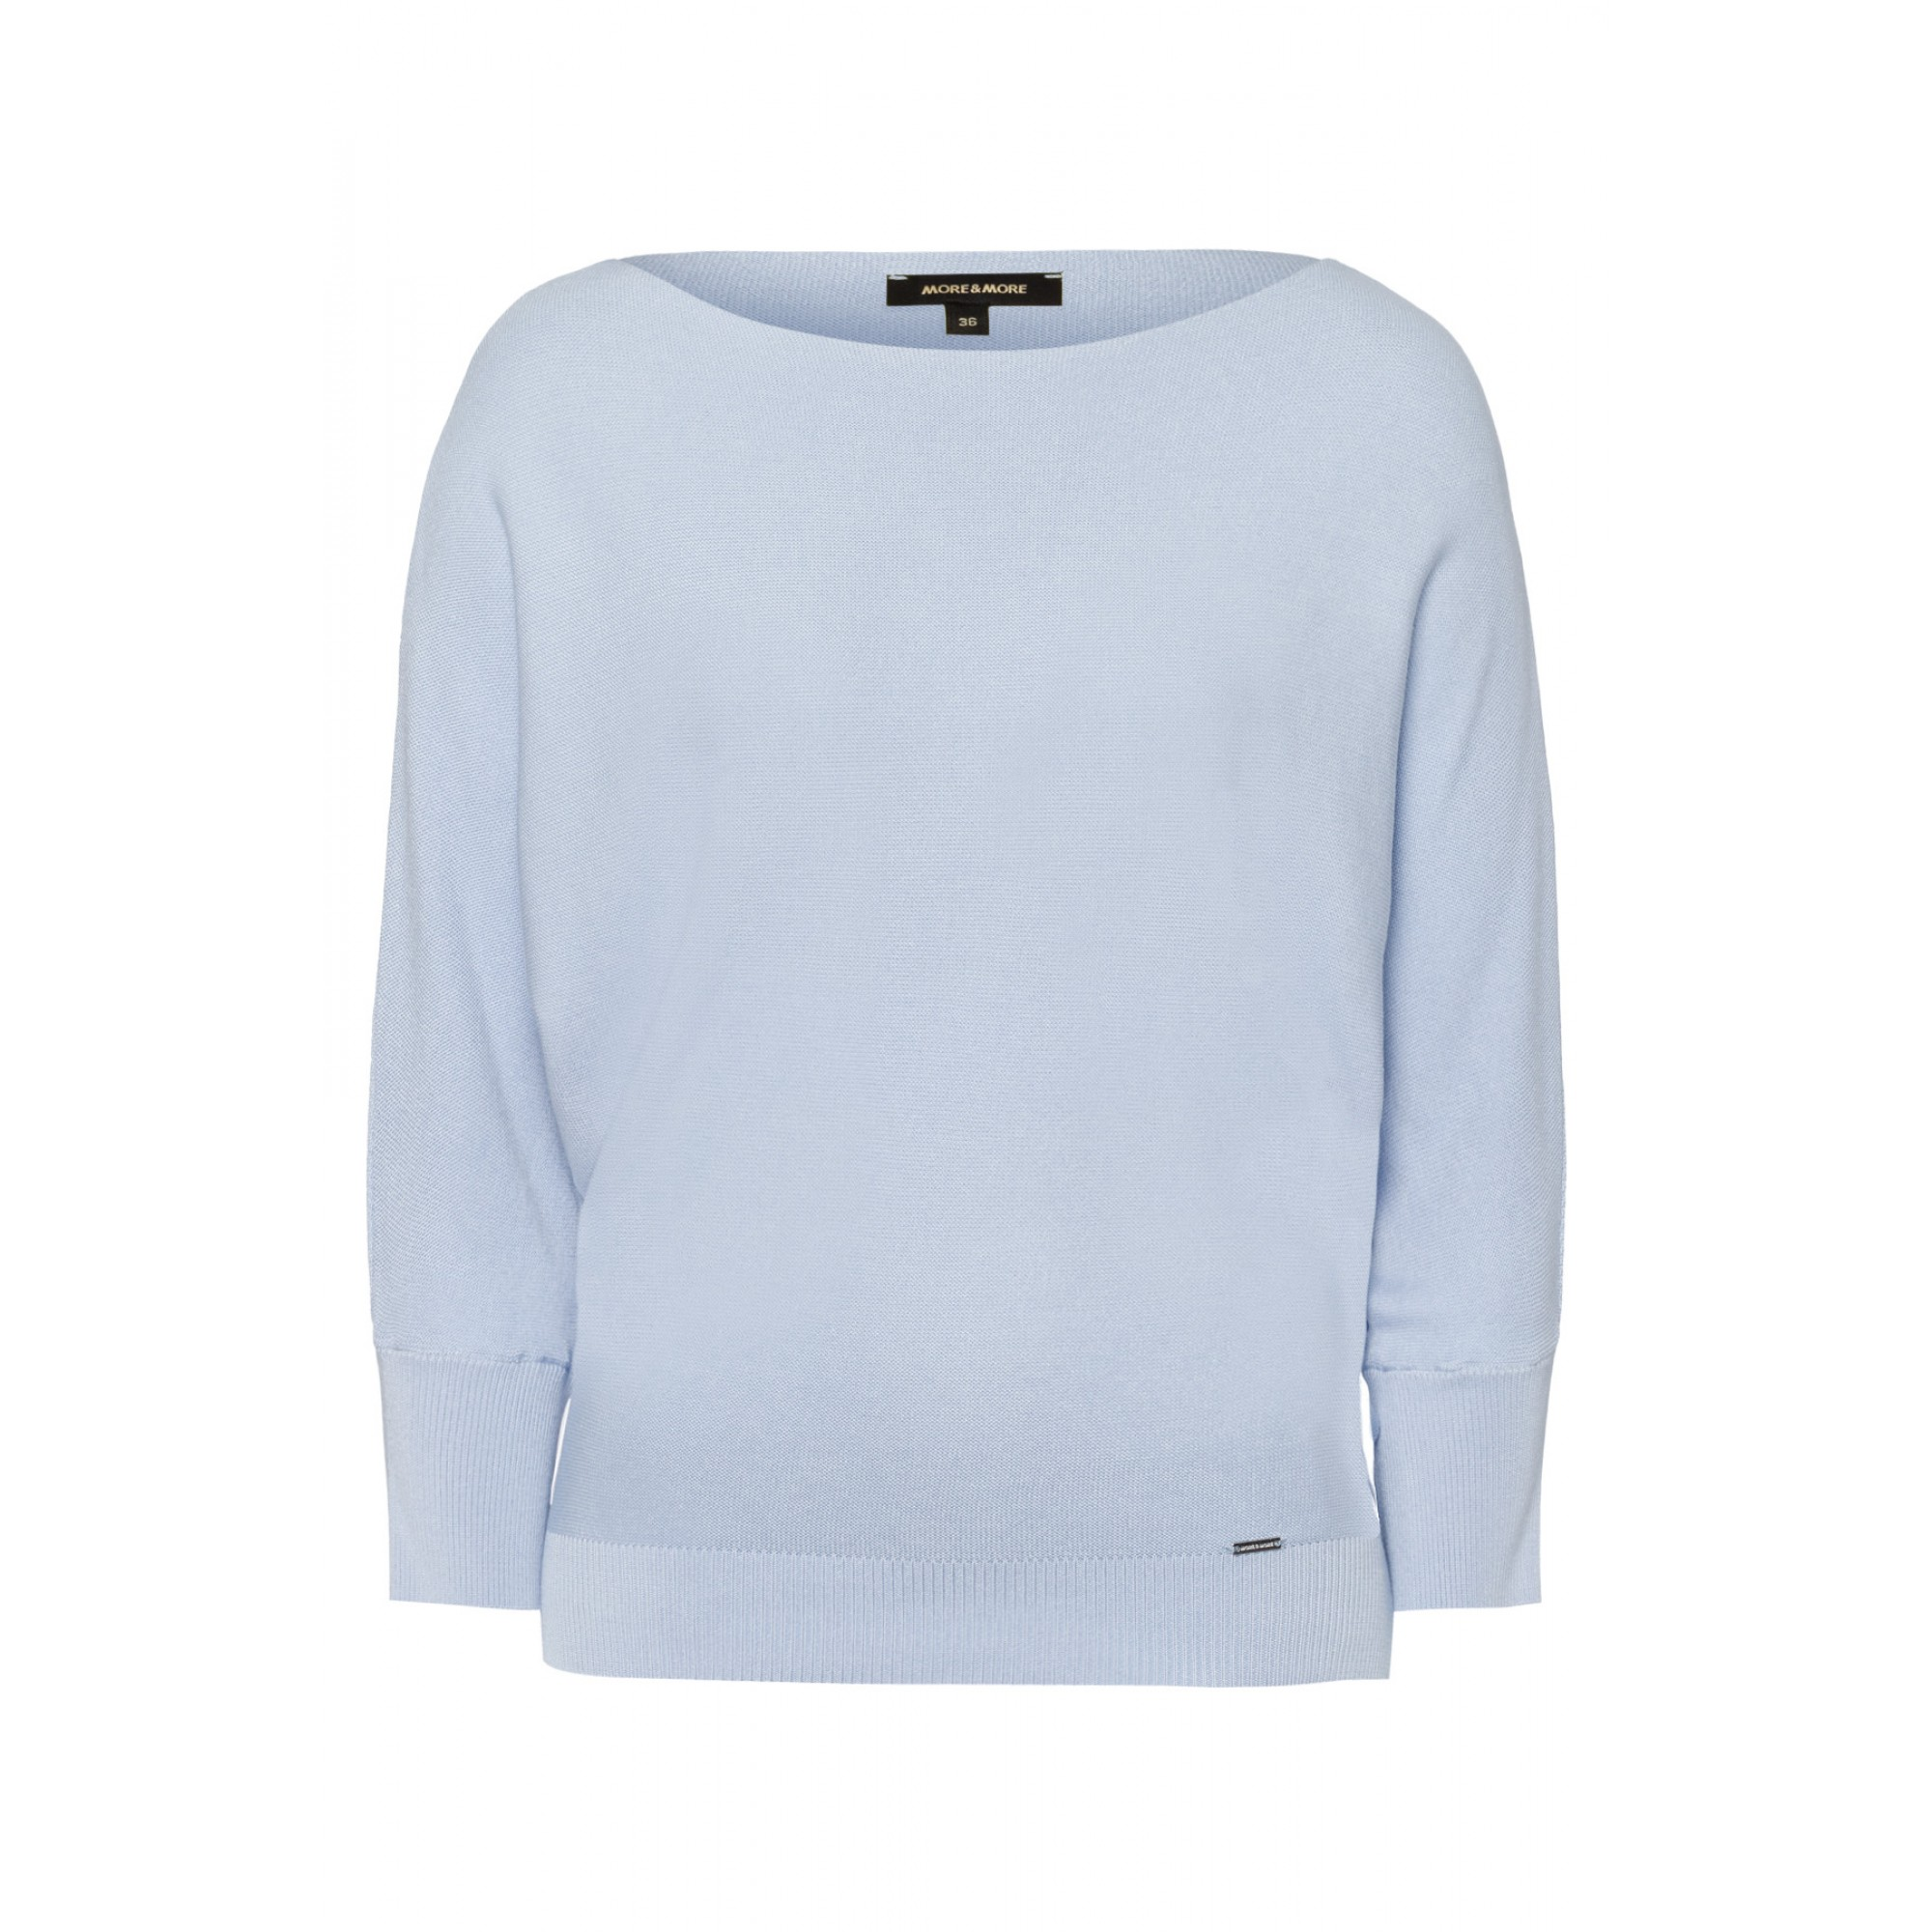 Fledermaus-Pullover, soft blue 11821549-0305 1